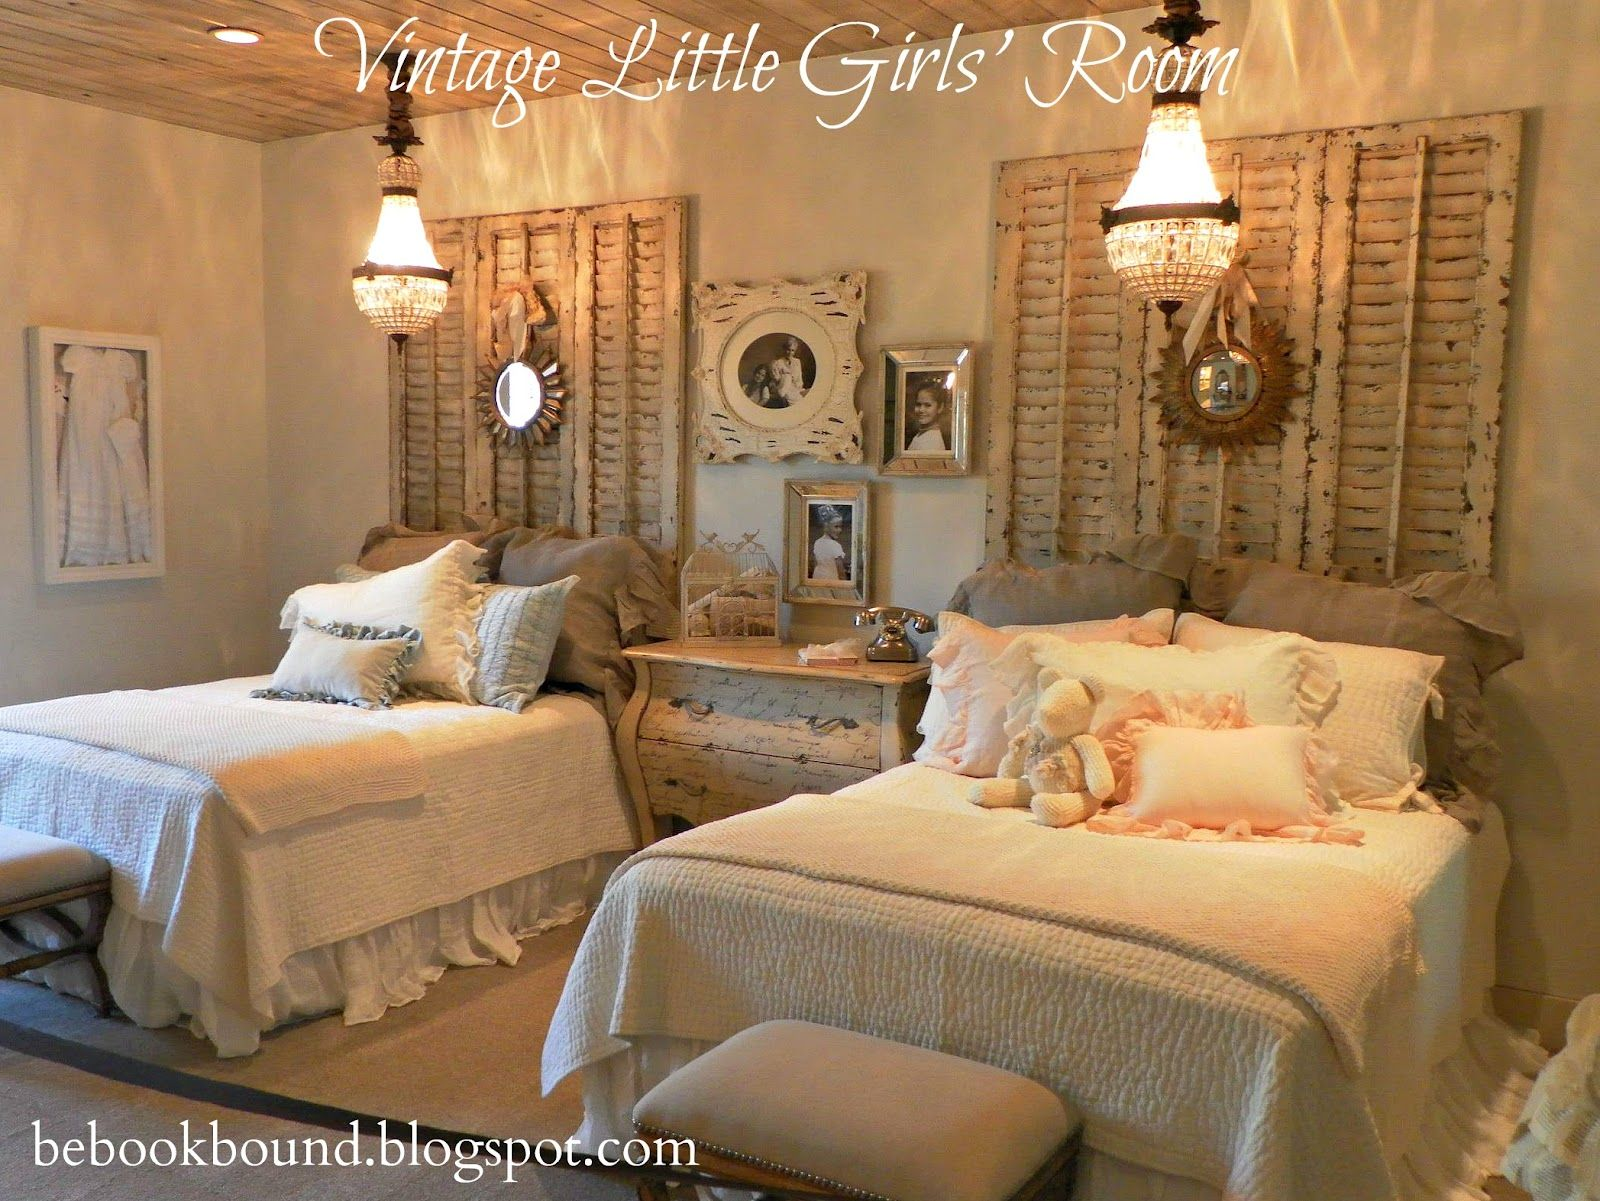 Brown bedroom ideas for teenage girls - 17 Best Ideas About Vintage Girls Bedrooms On Pinterest Vintage Girls Rooms Pink Vintage Bedroom And Vintage Teen Bedrooms